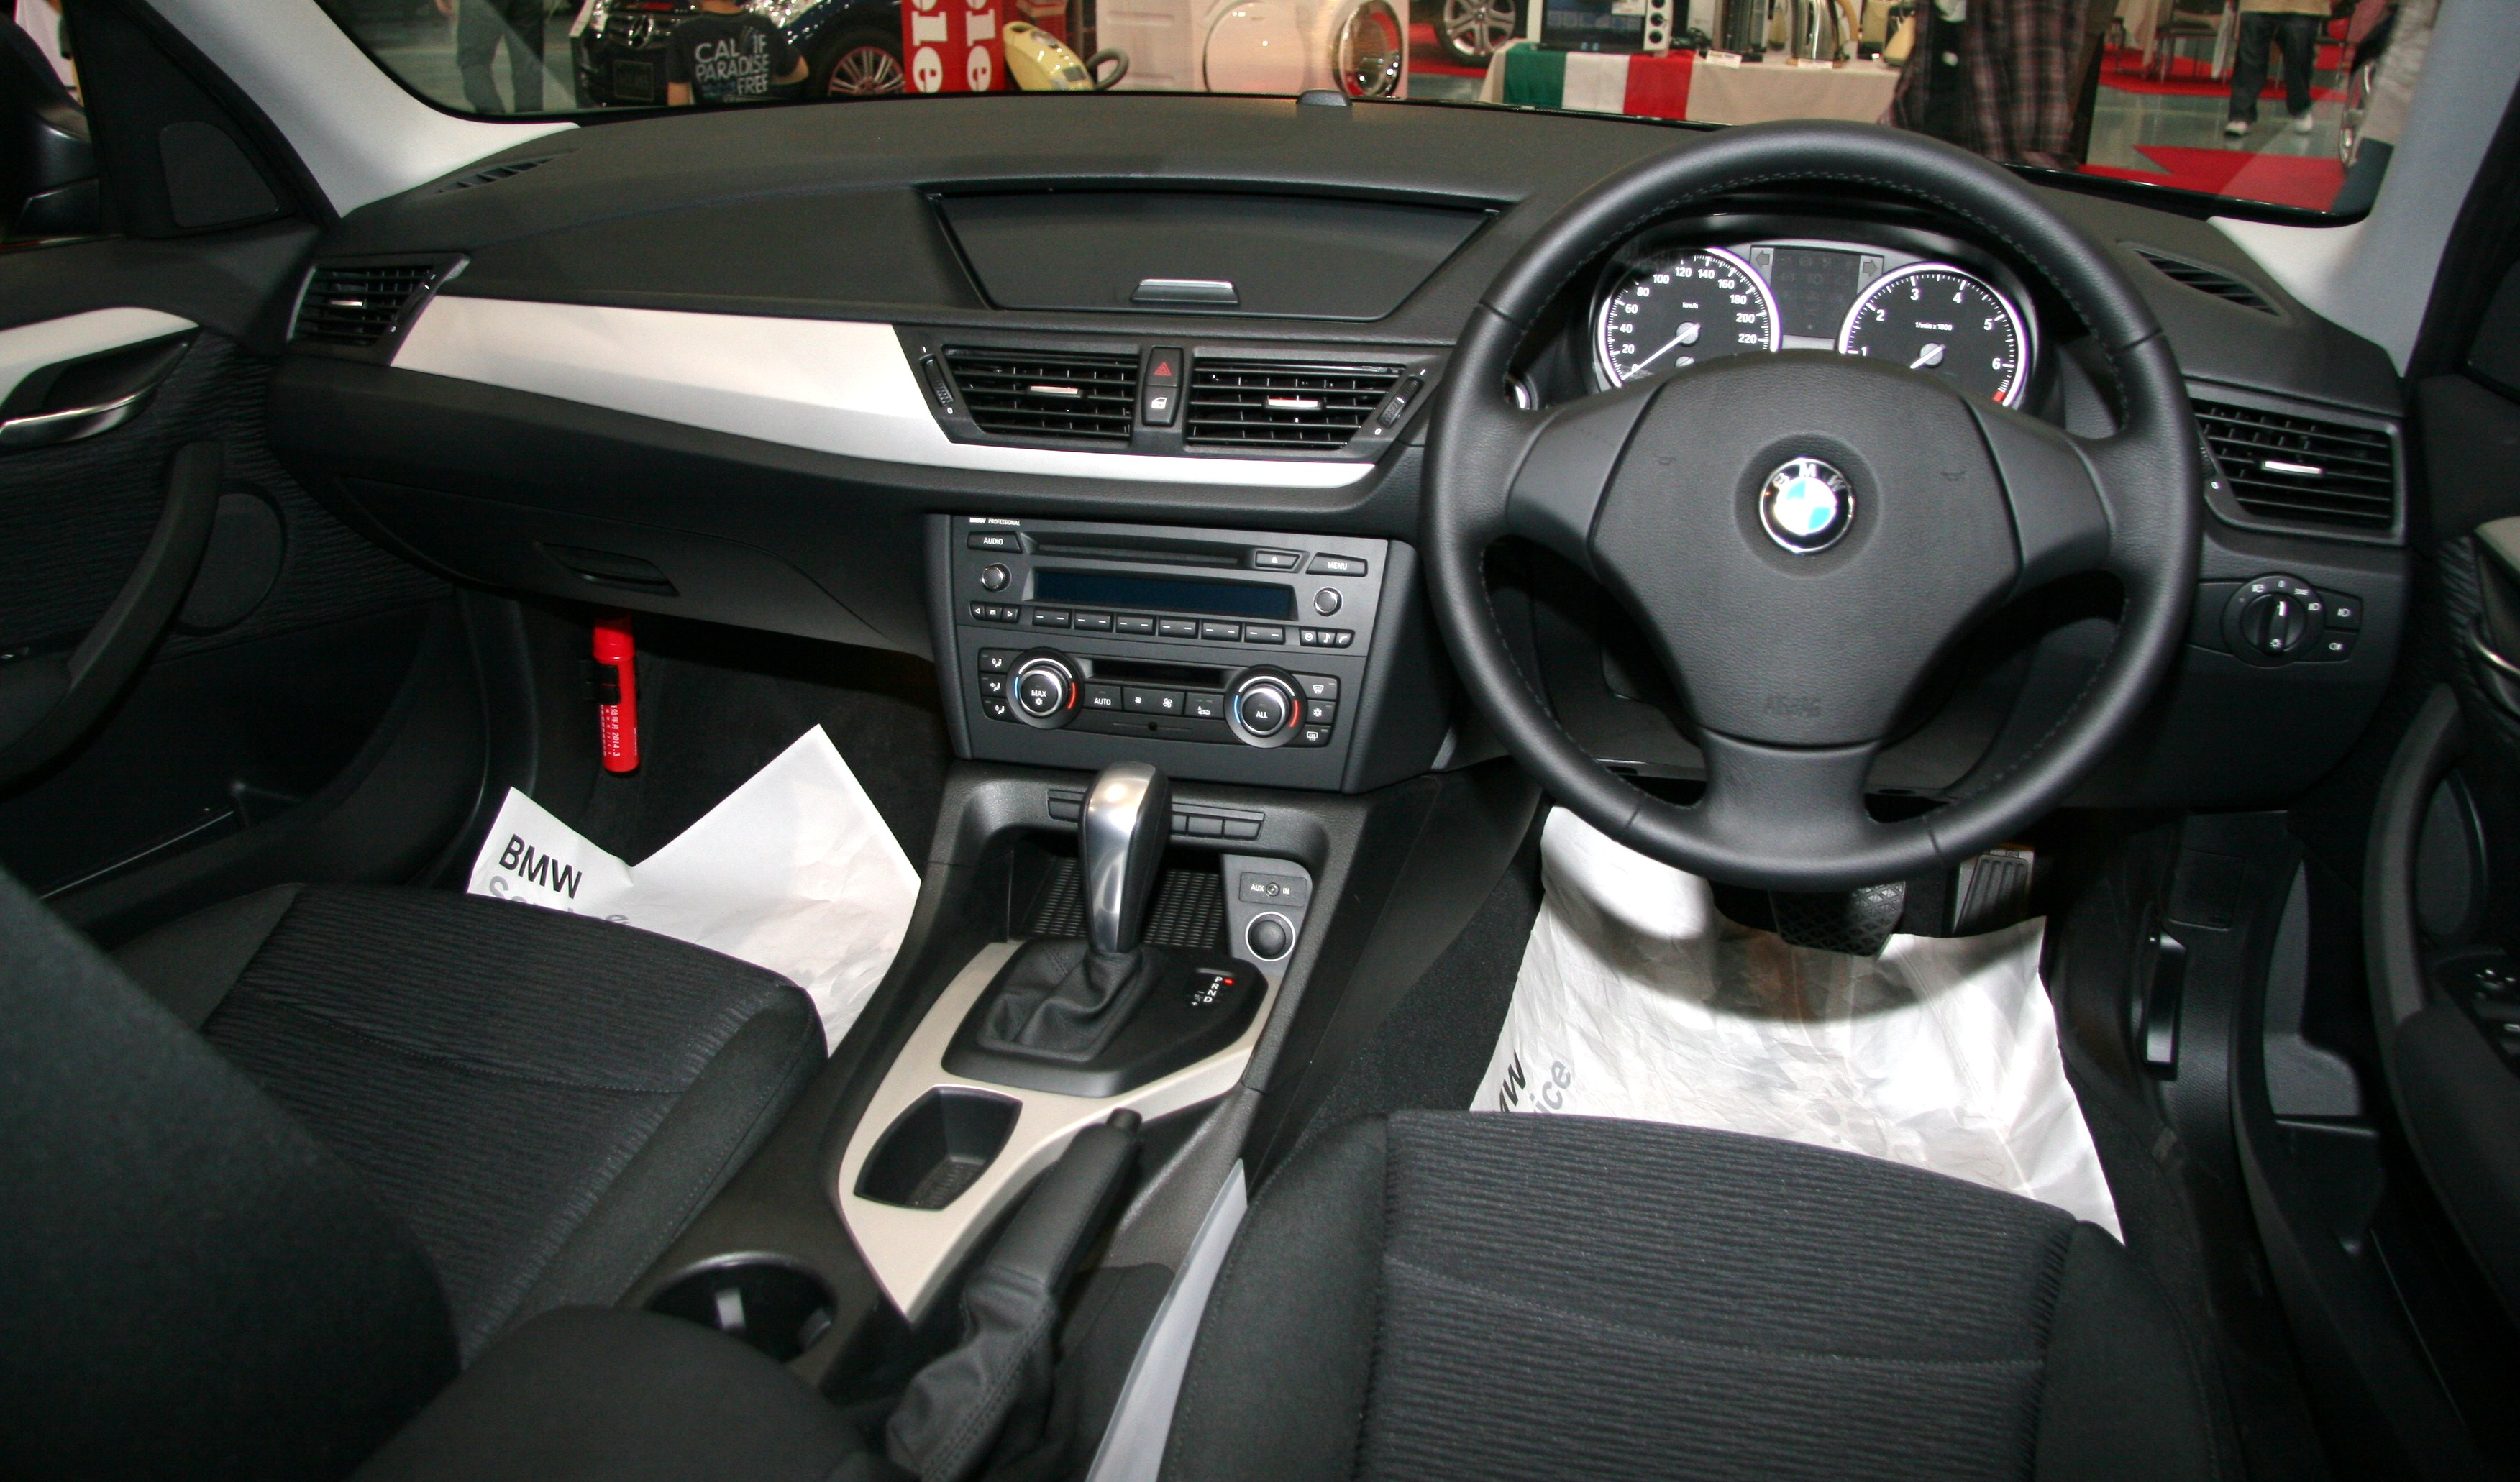 File Bmw X1 Sdrive 18i Interior Jpg Wikimedia Commons